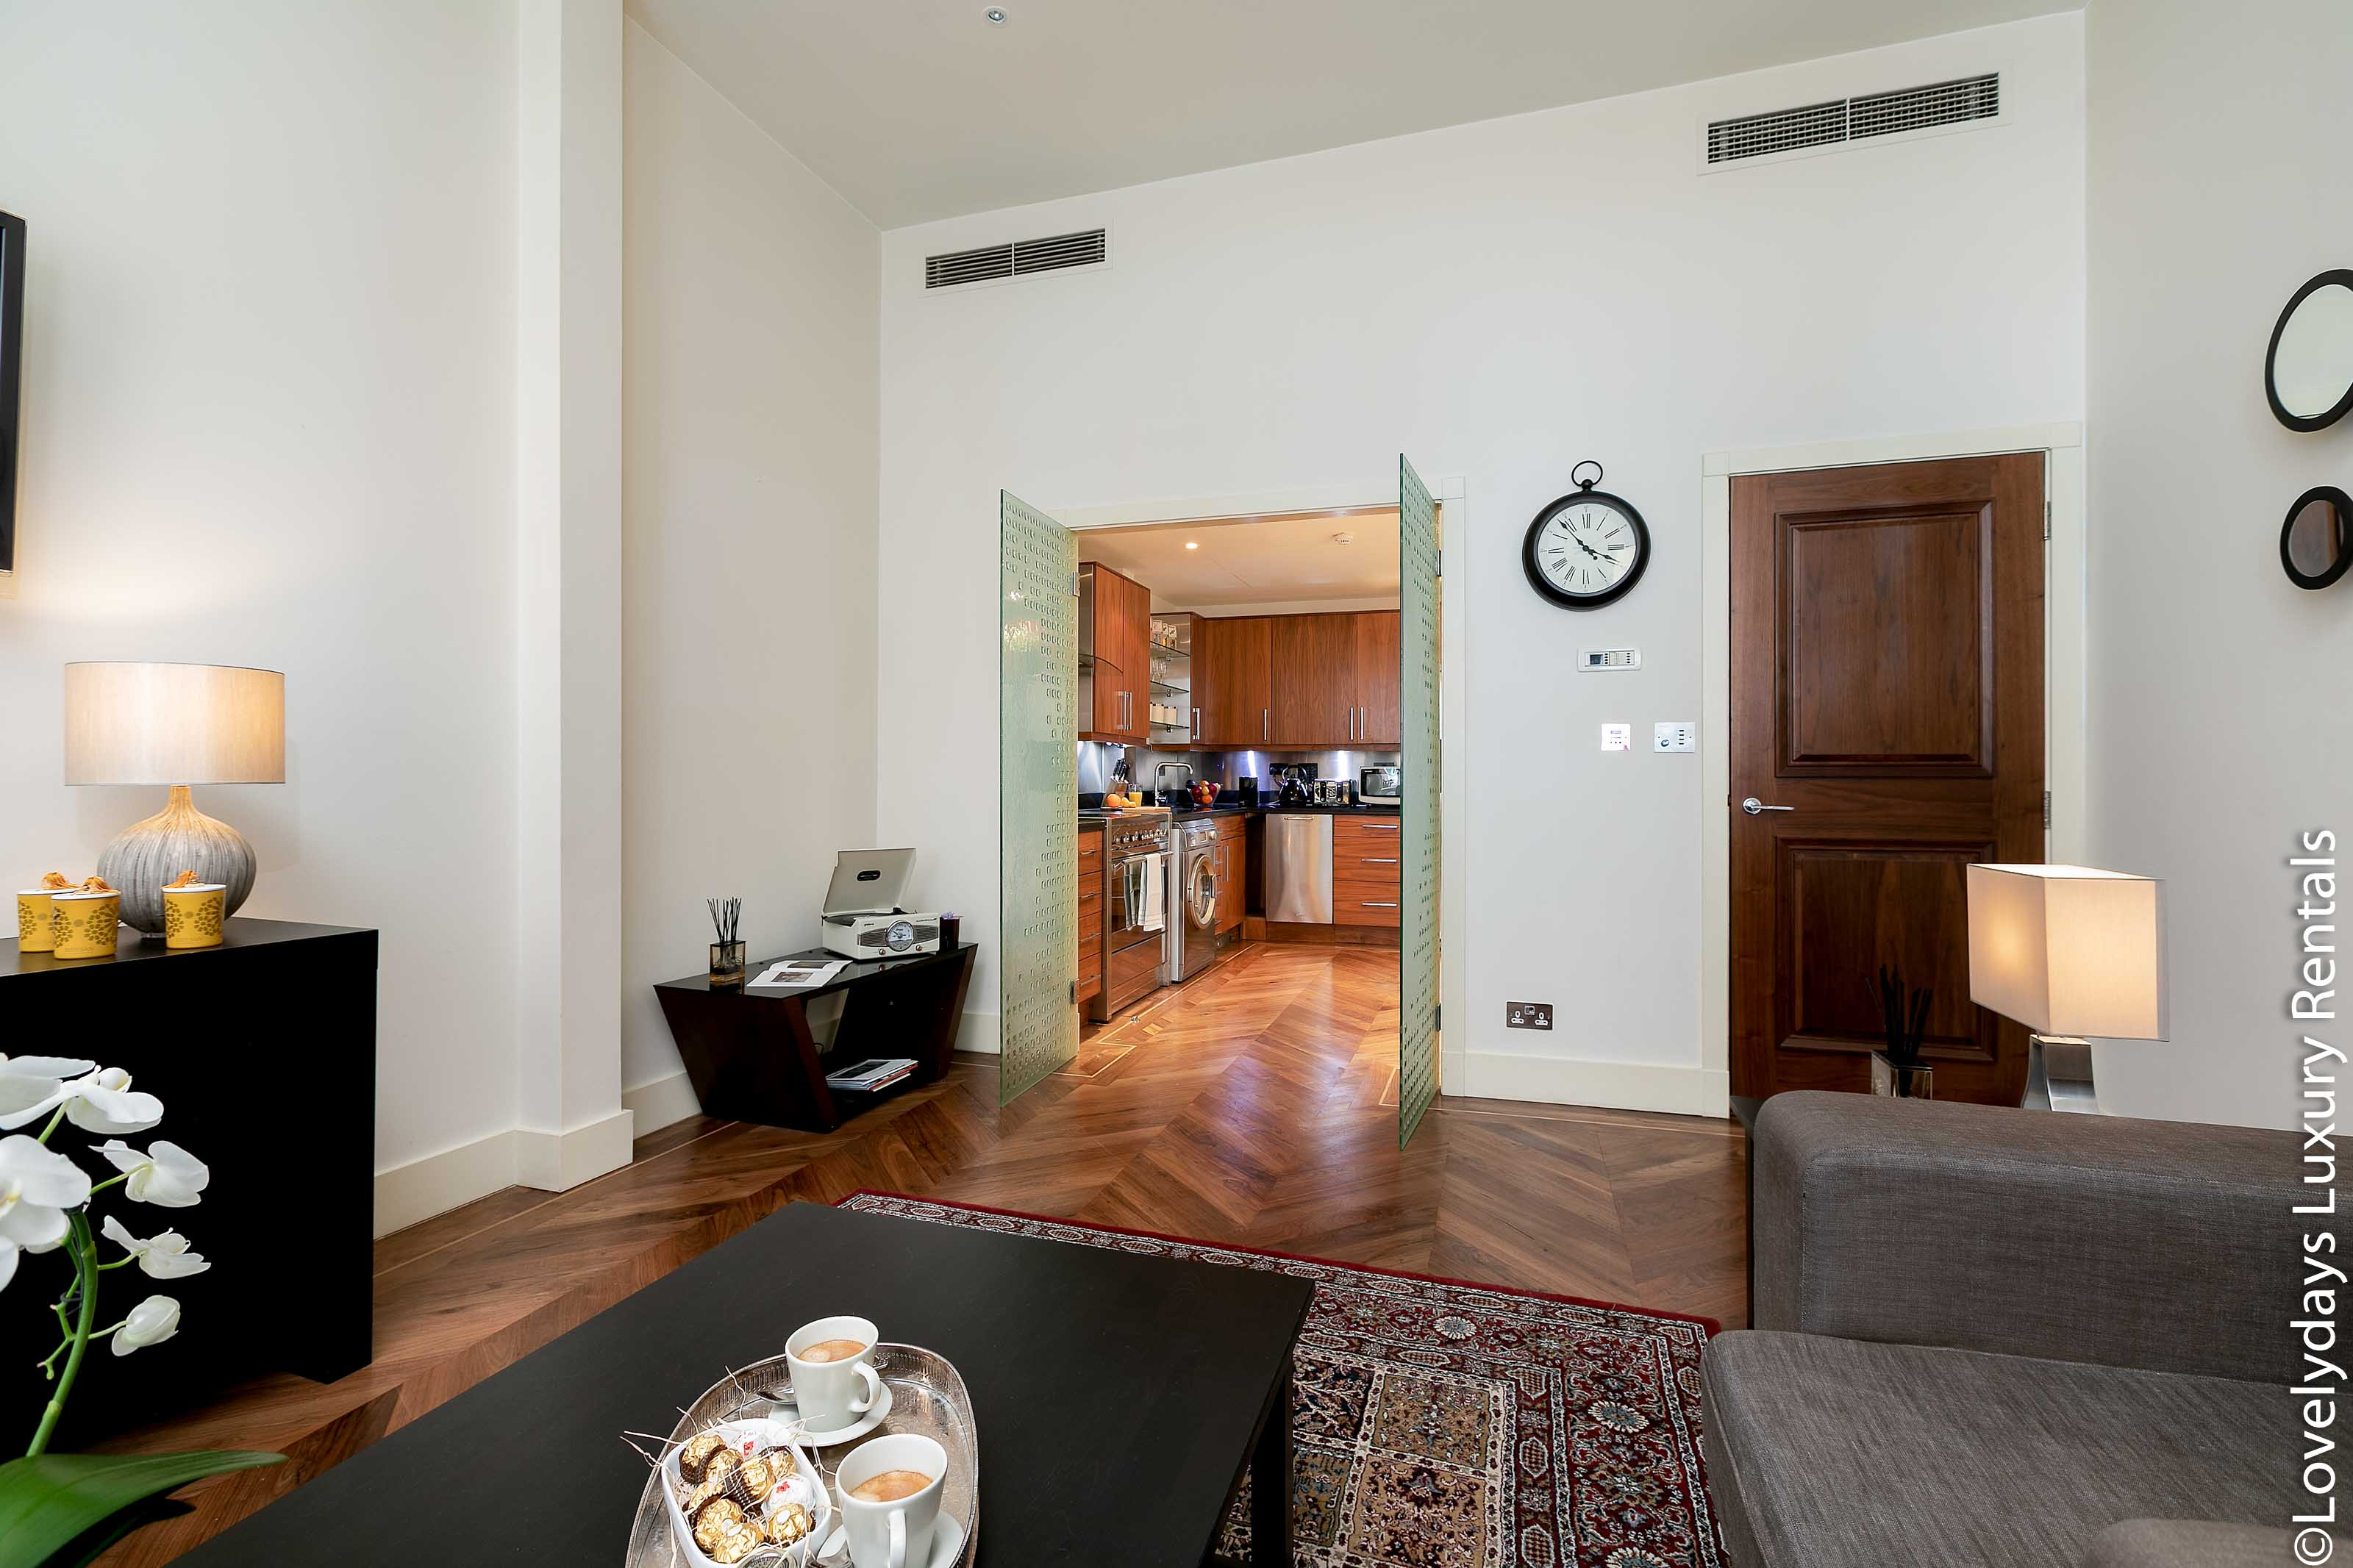 Lovelydays luxury service apartment rental - London - Knightsbridge - Hans Crescent - Partner - 2 bedrooms - 2 bathrooms - Luxury living room - 120f222df007 - Lovelydays